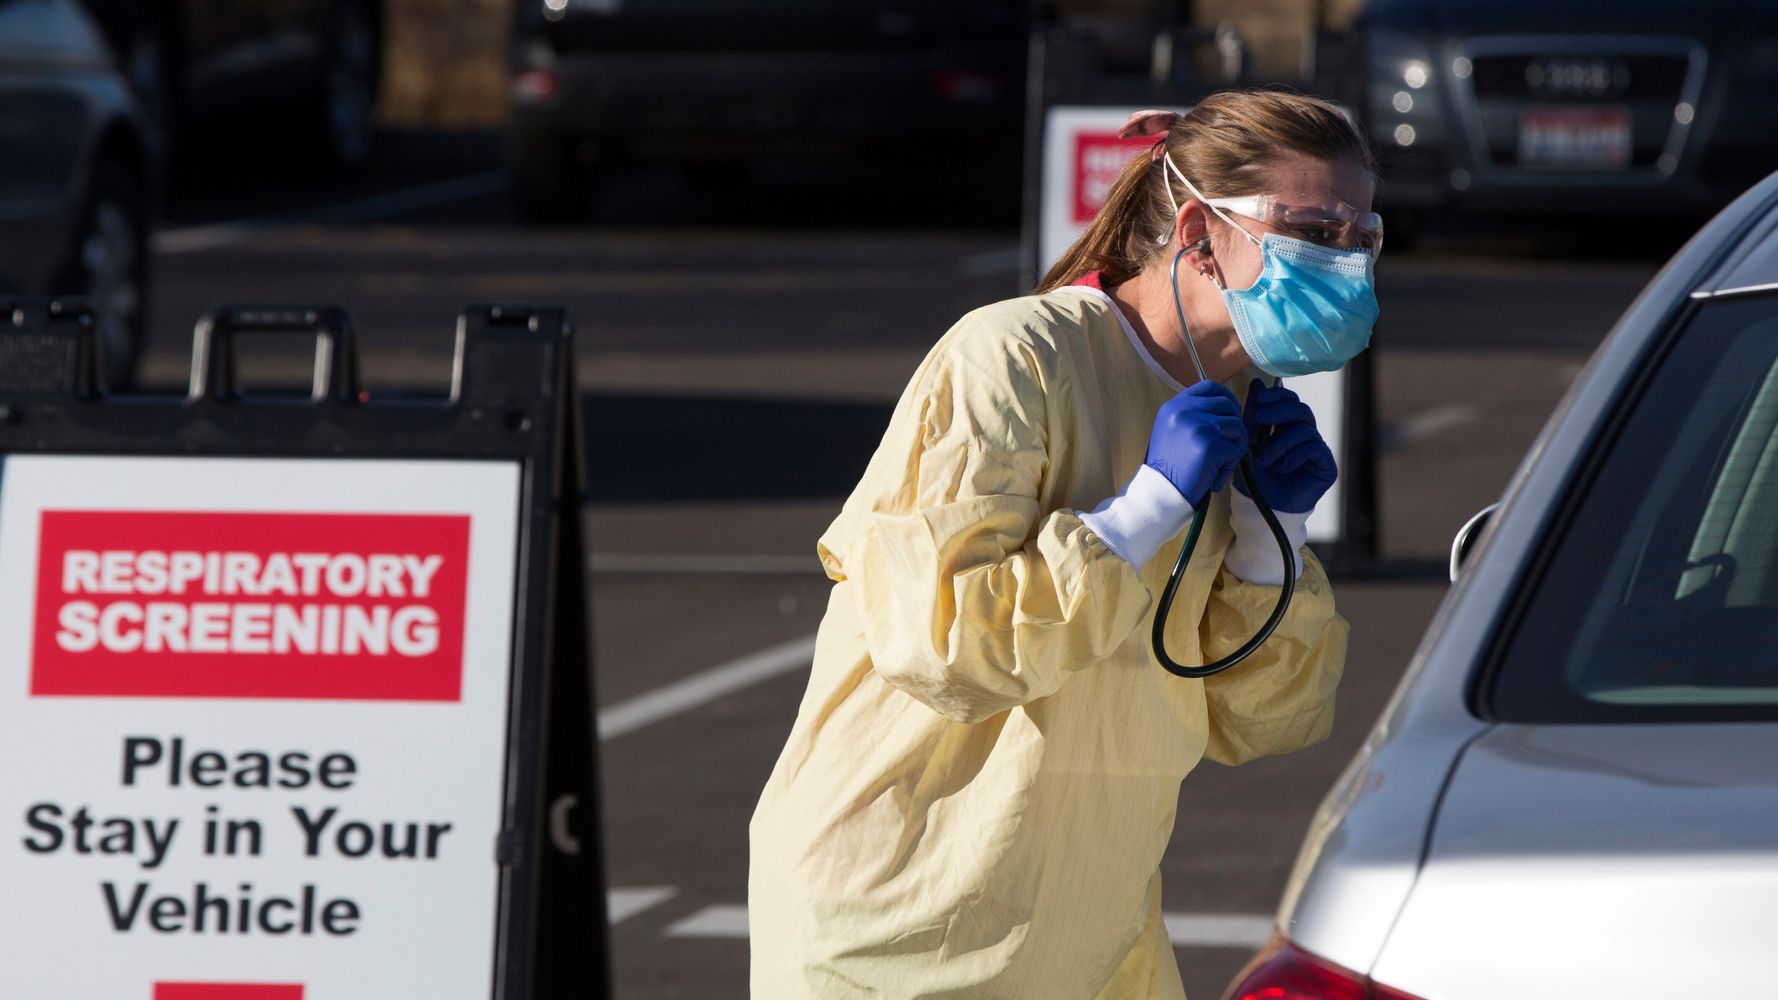 Tensions Rise Over Masks As Virus Grips Smaller U.S. Cities 1